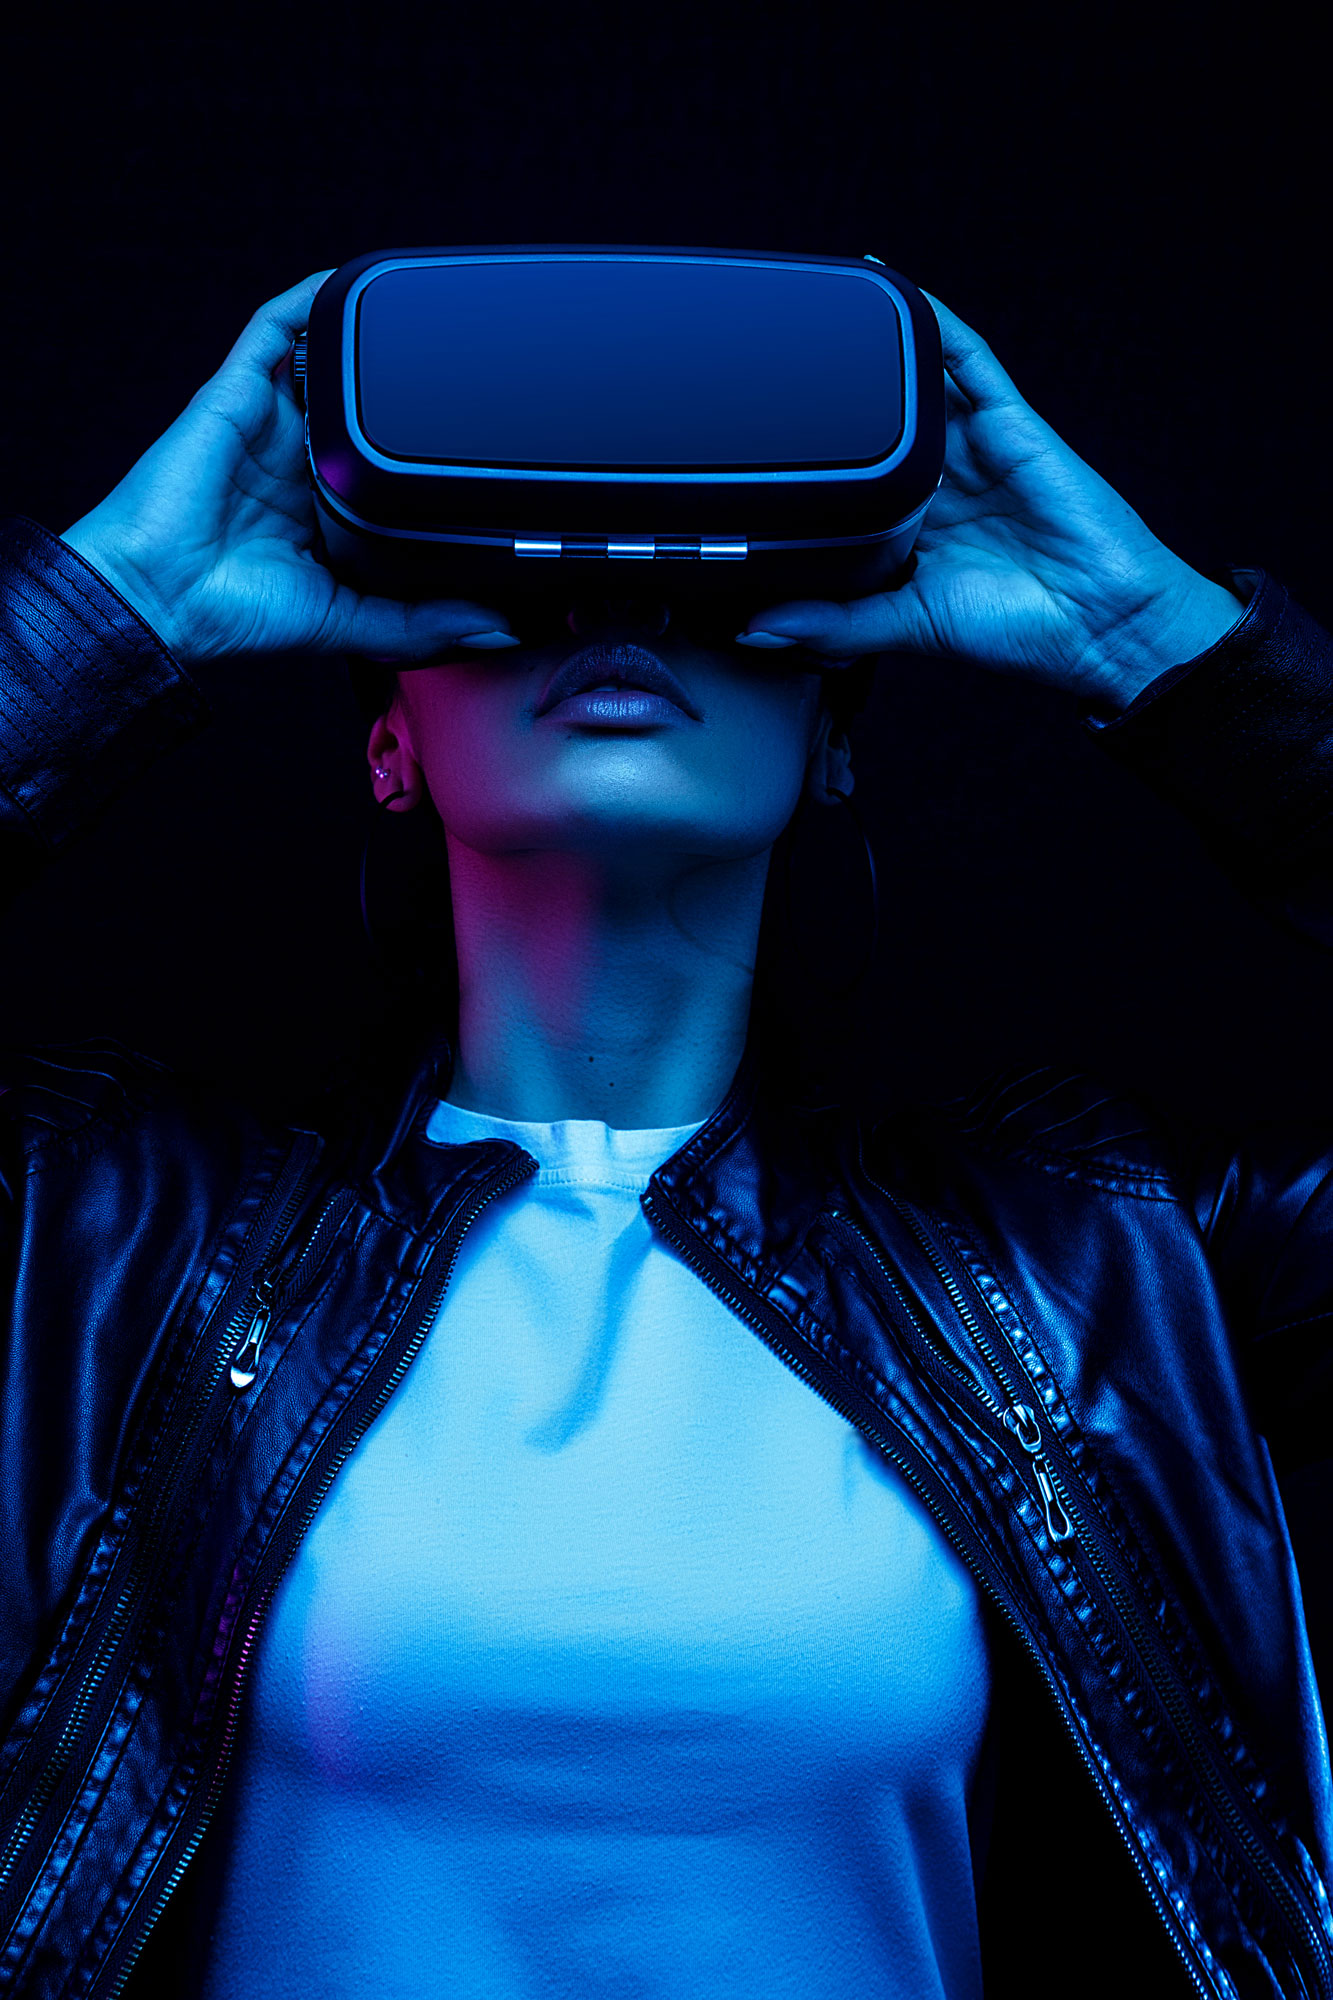 Employee utlising virtual reality technology in the workplace